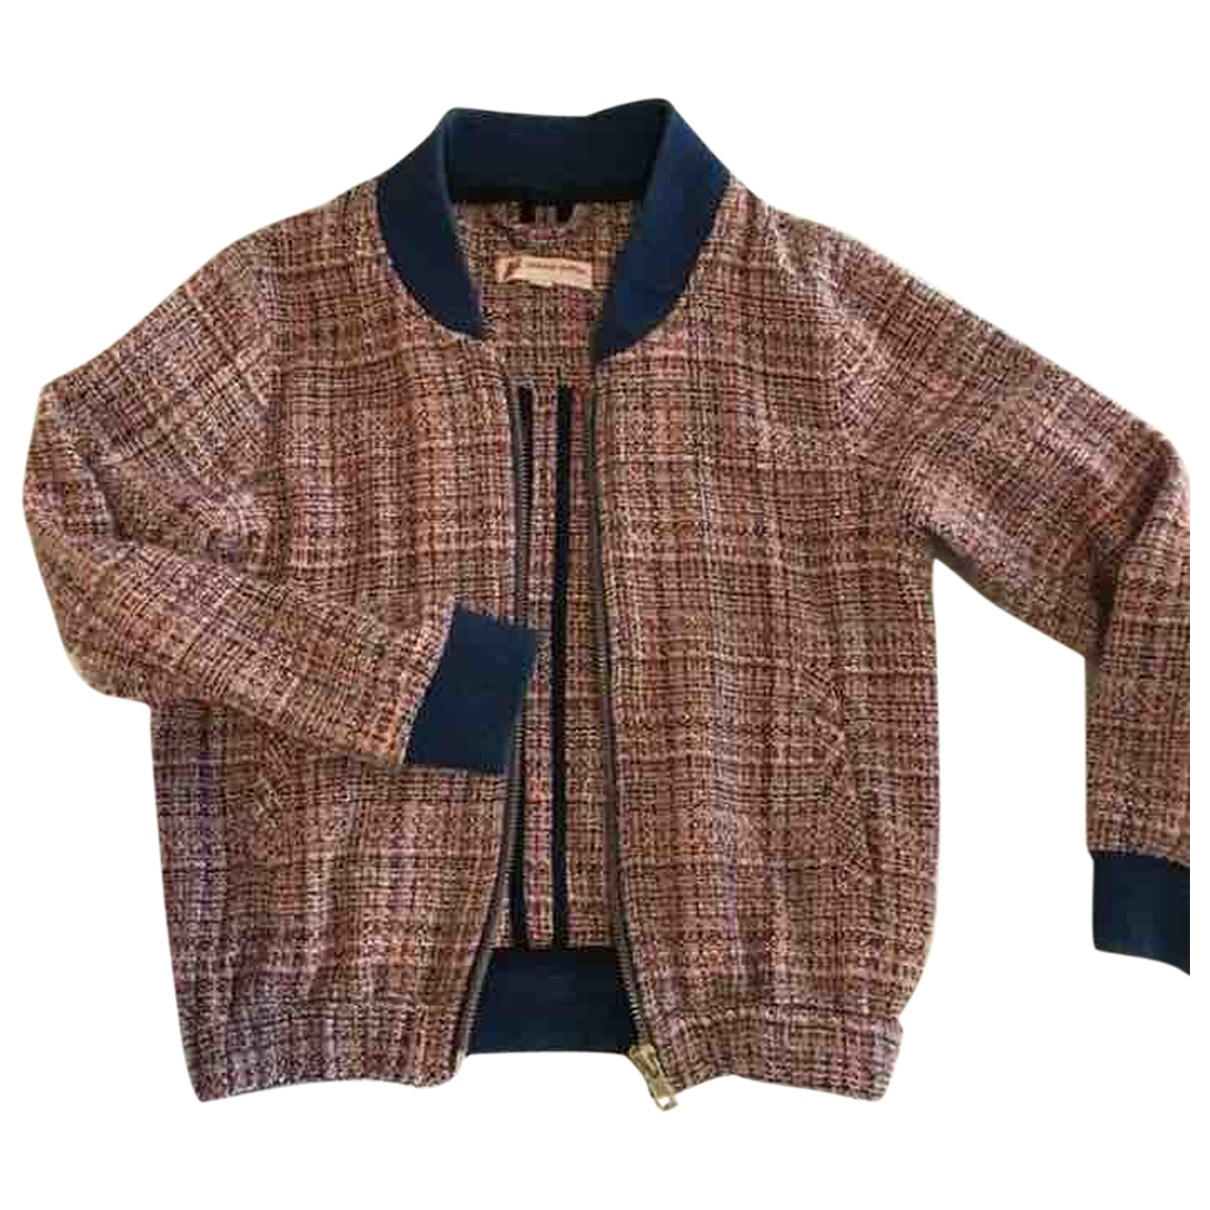 American Outfitters \N Multicolour Cotton jacket & coat for Kids 6 years - up to 114cm FR